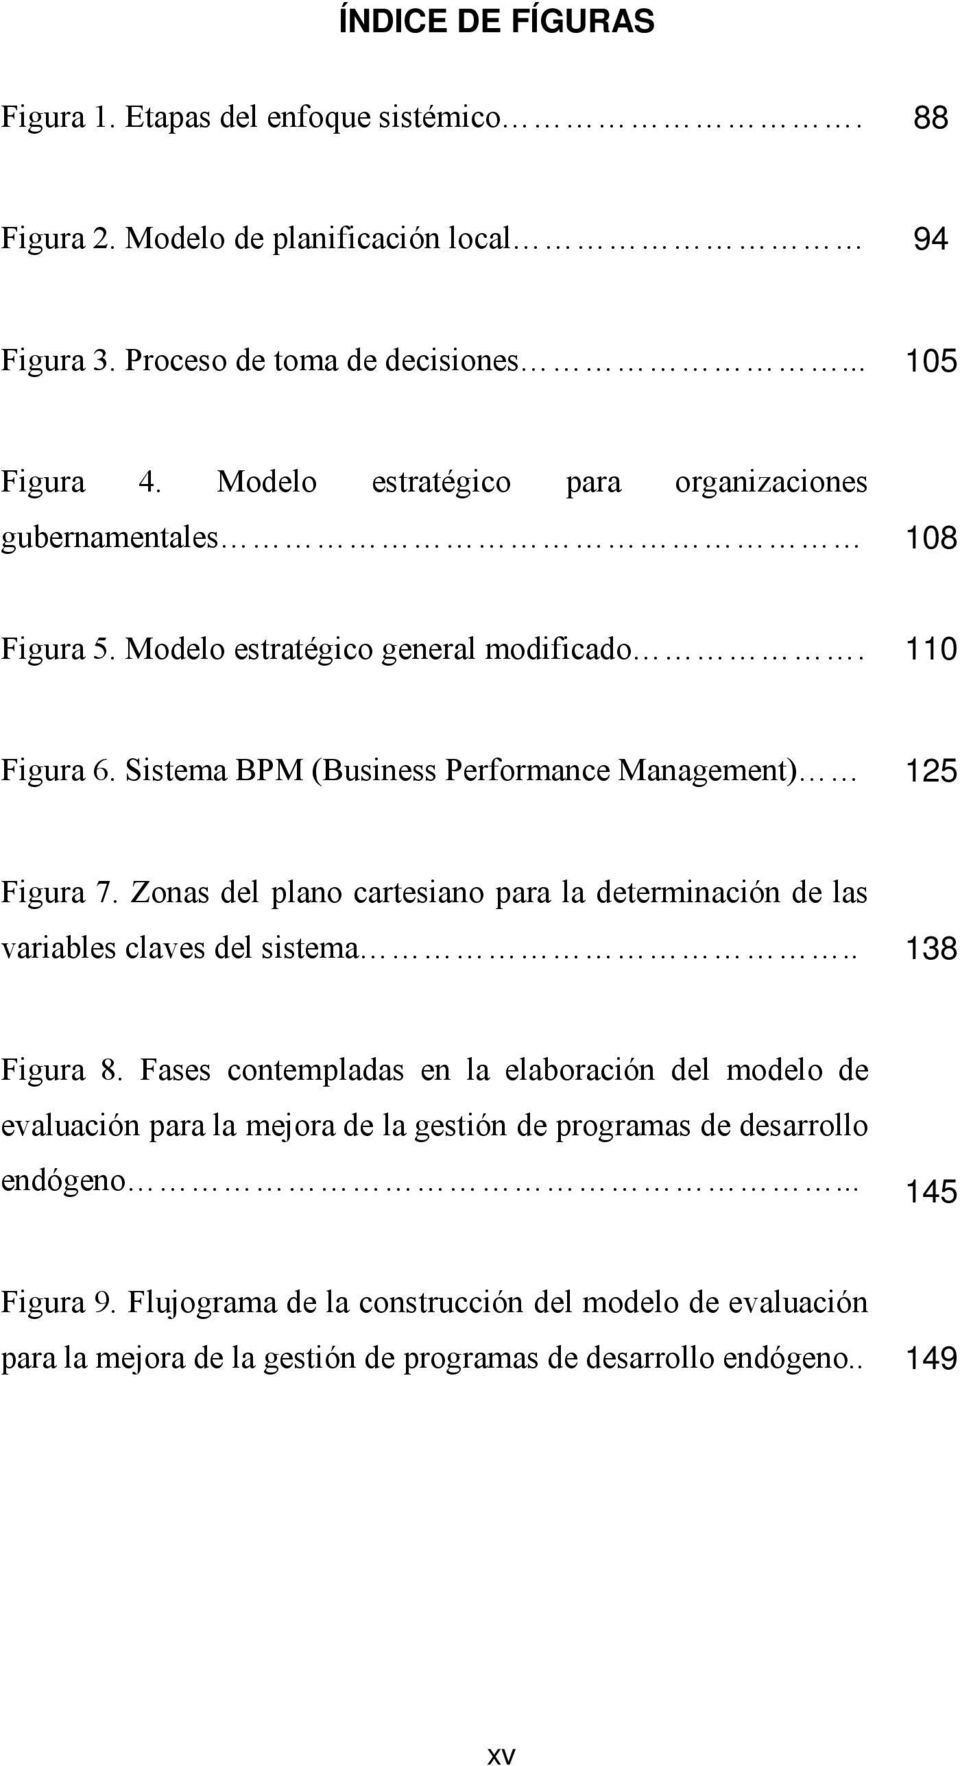 Sistema BPM (Business Performance Management) 125 Figura 7. Zonas del plano cartesiano para la determinación de las variables claves del sistema.. 138 Figura 8.